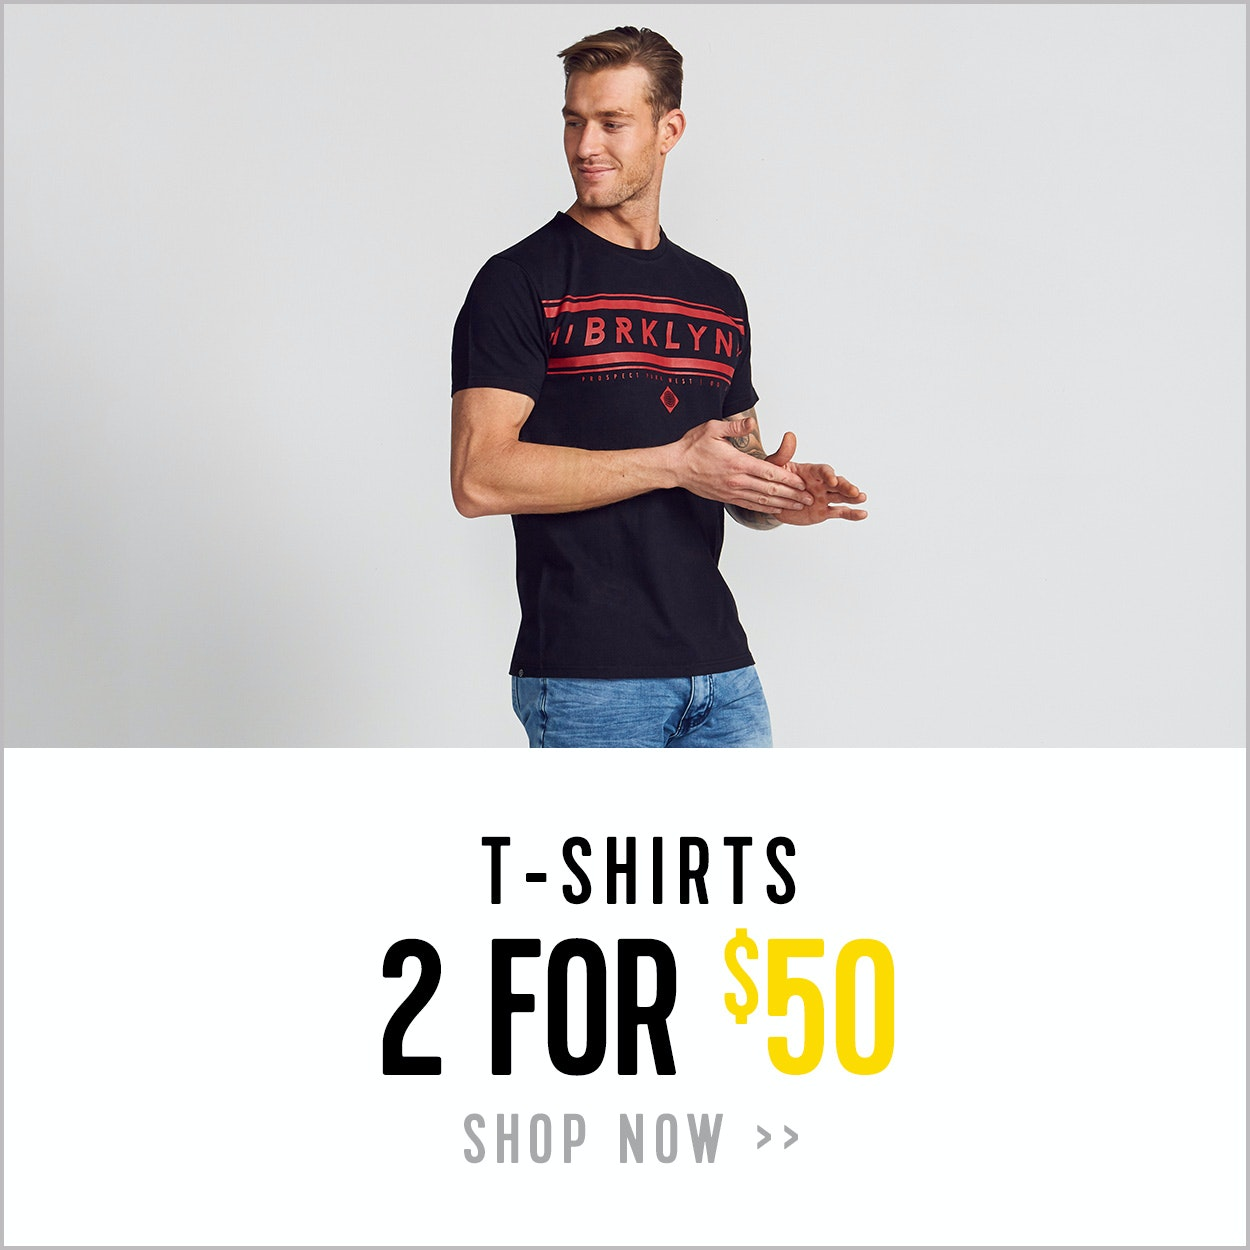 T-shirts - 2 for $50